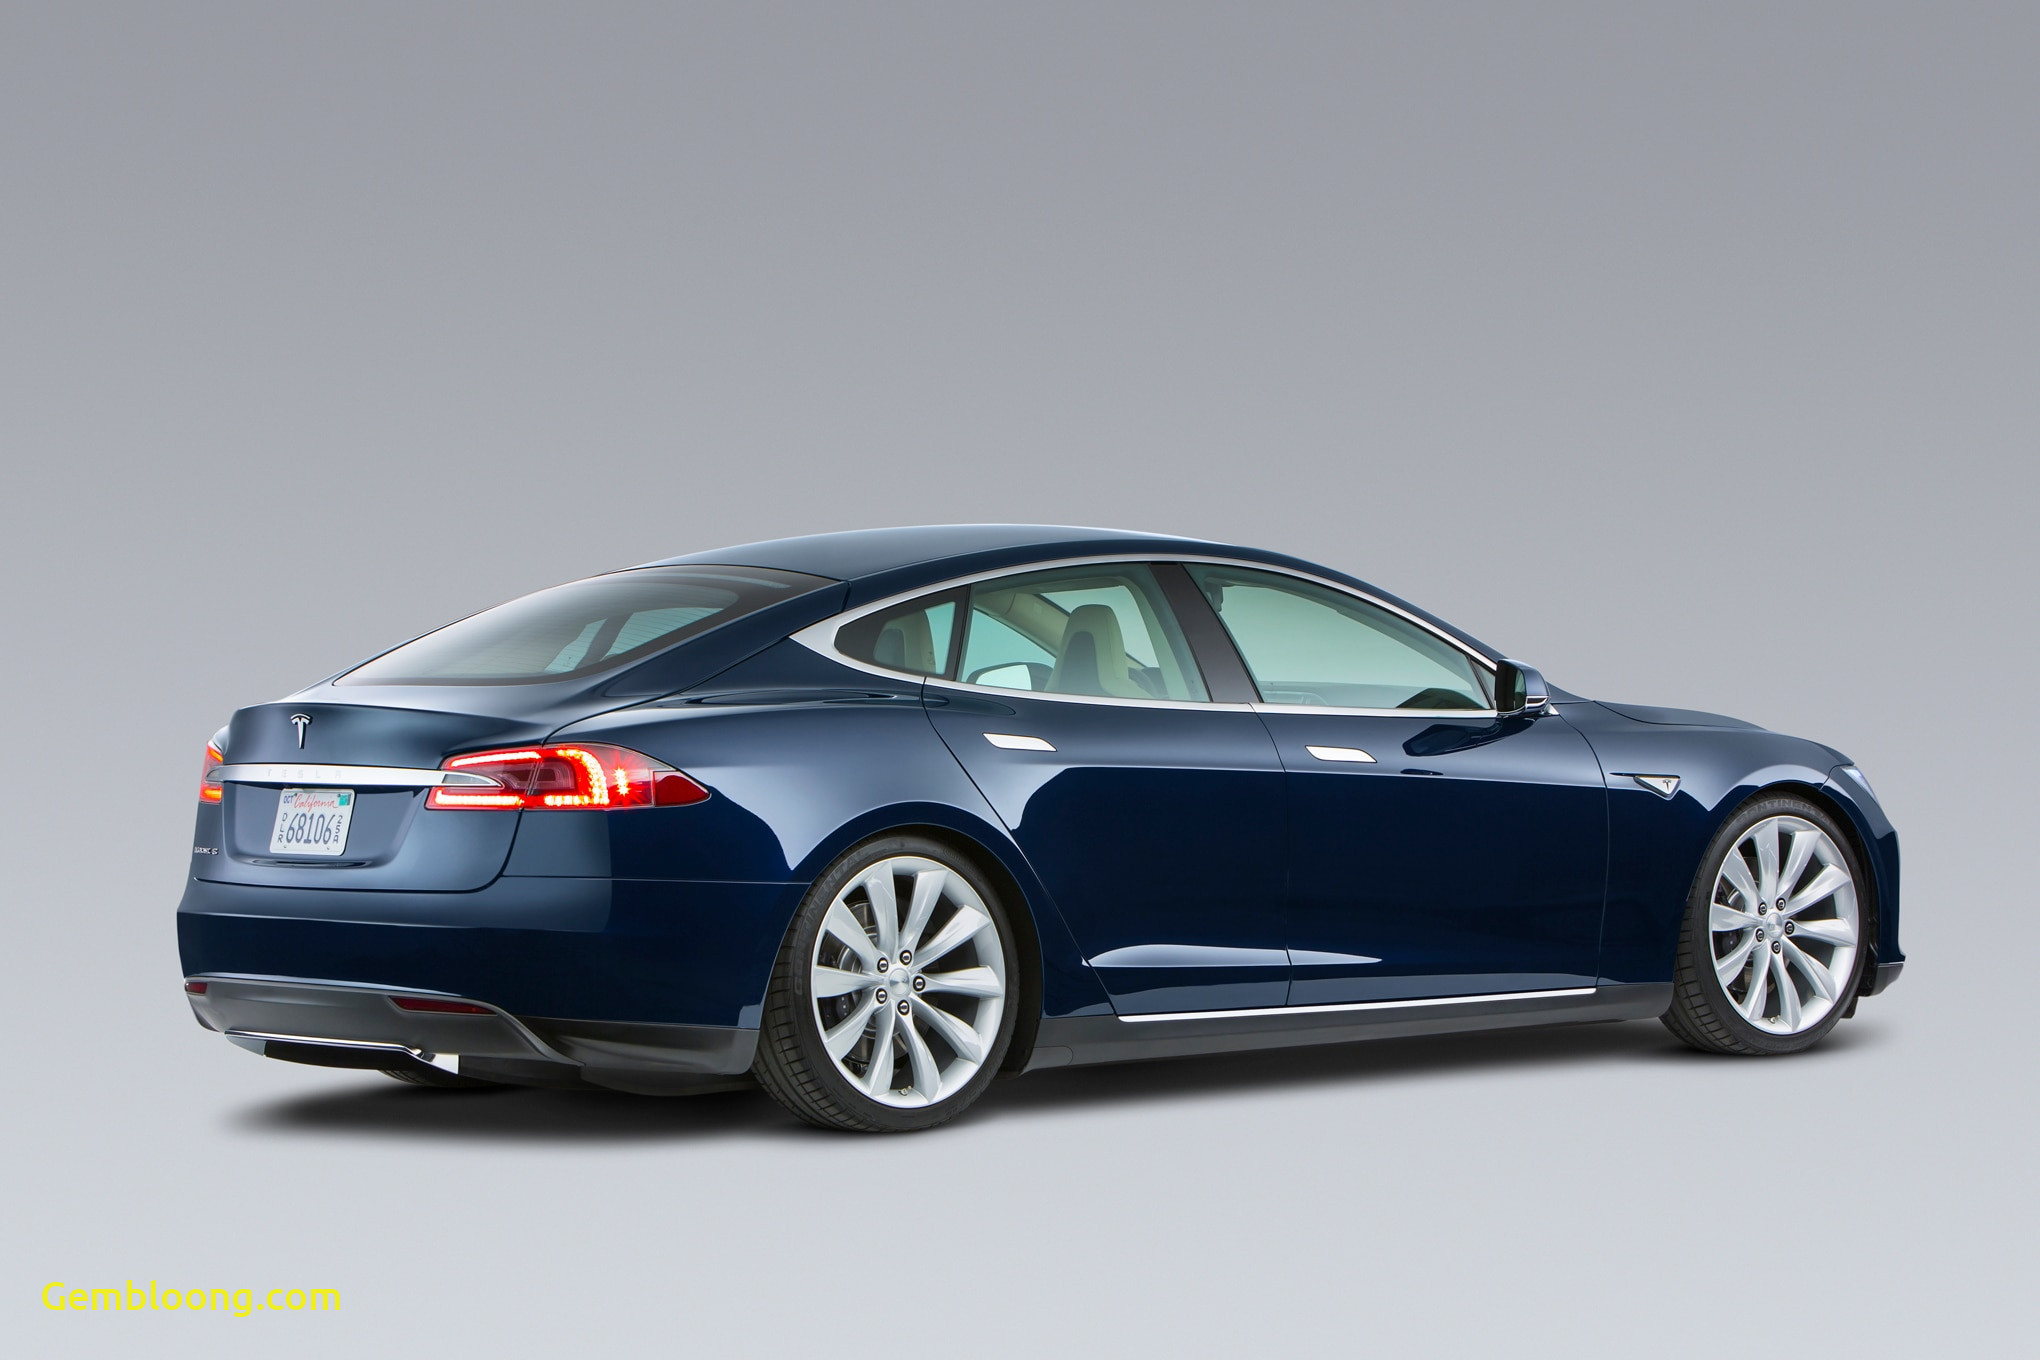 Tesla to A/m New Tesla Model S software Update 6 2 Helps Avoid Range Anxiety